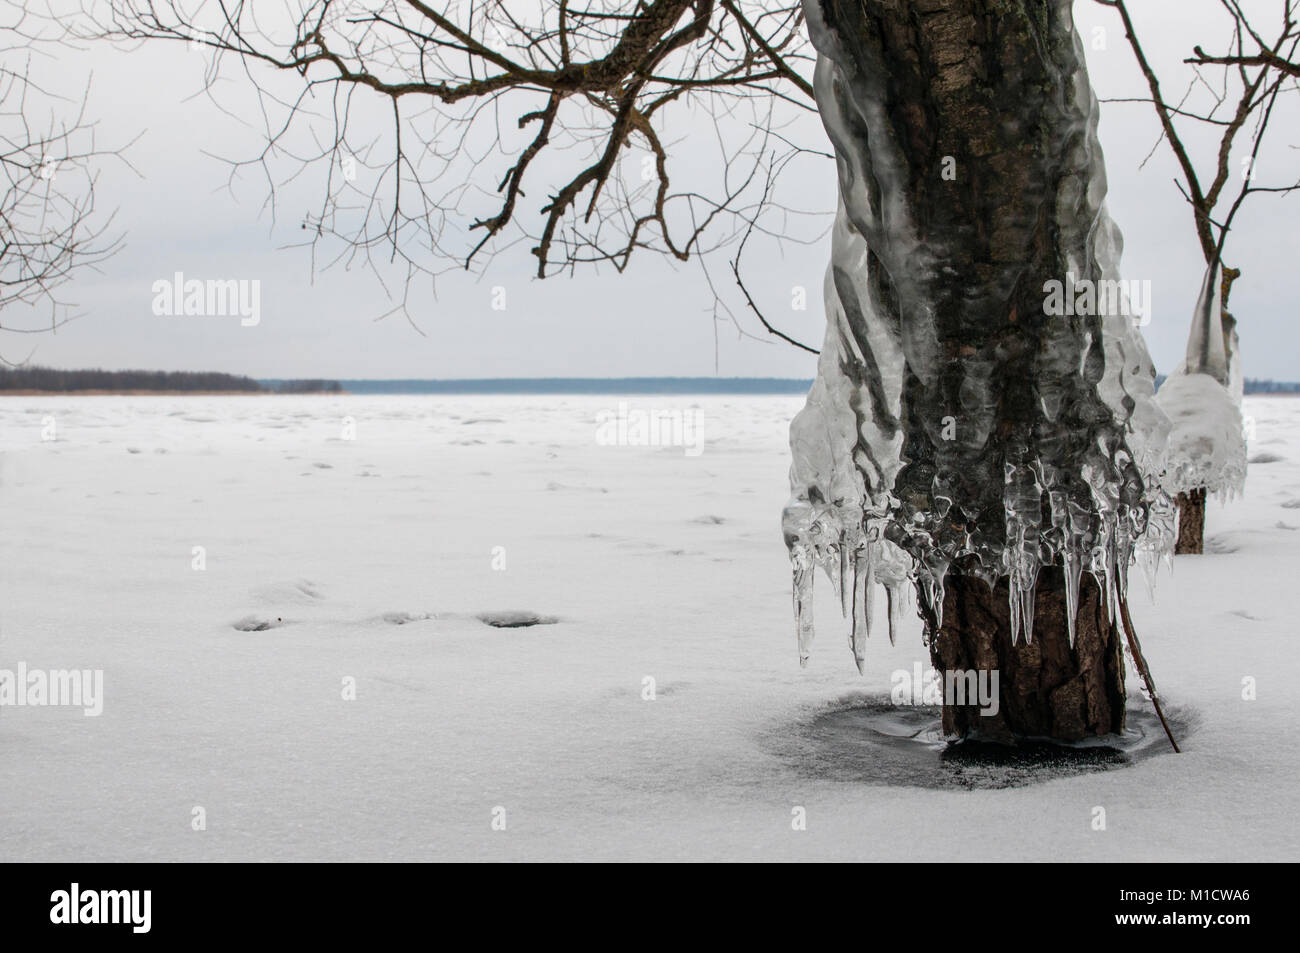 Icicles Tree Stock Photos & Icicles Tree Stock Images - Alamy